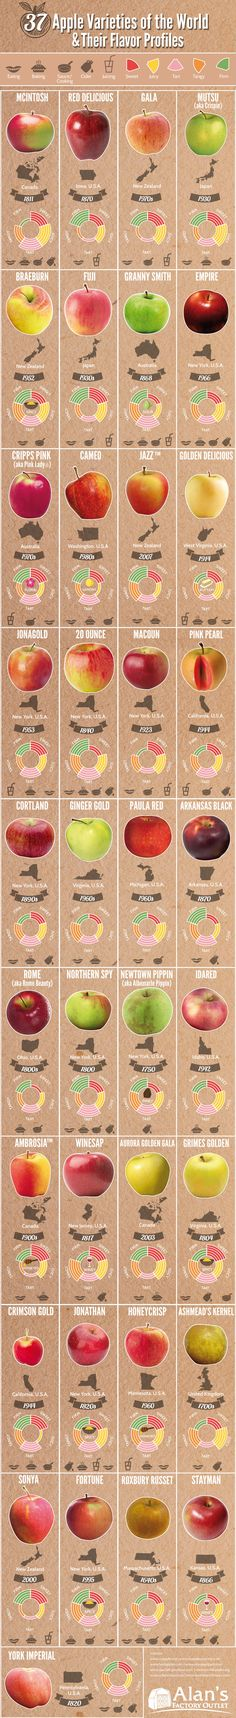 37 Apple varieties and their flavor  profiles